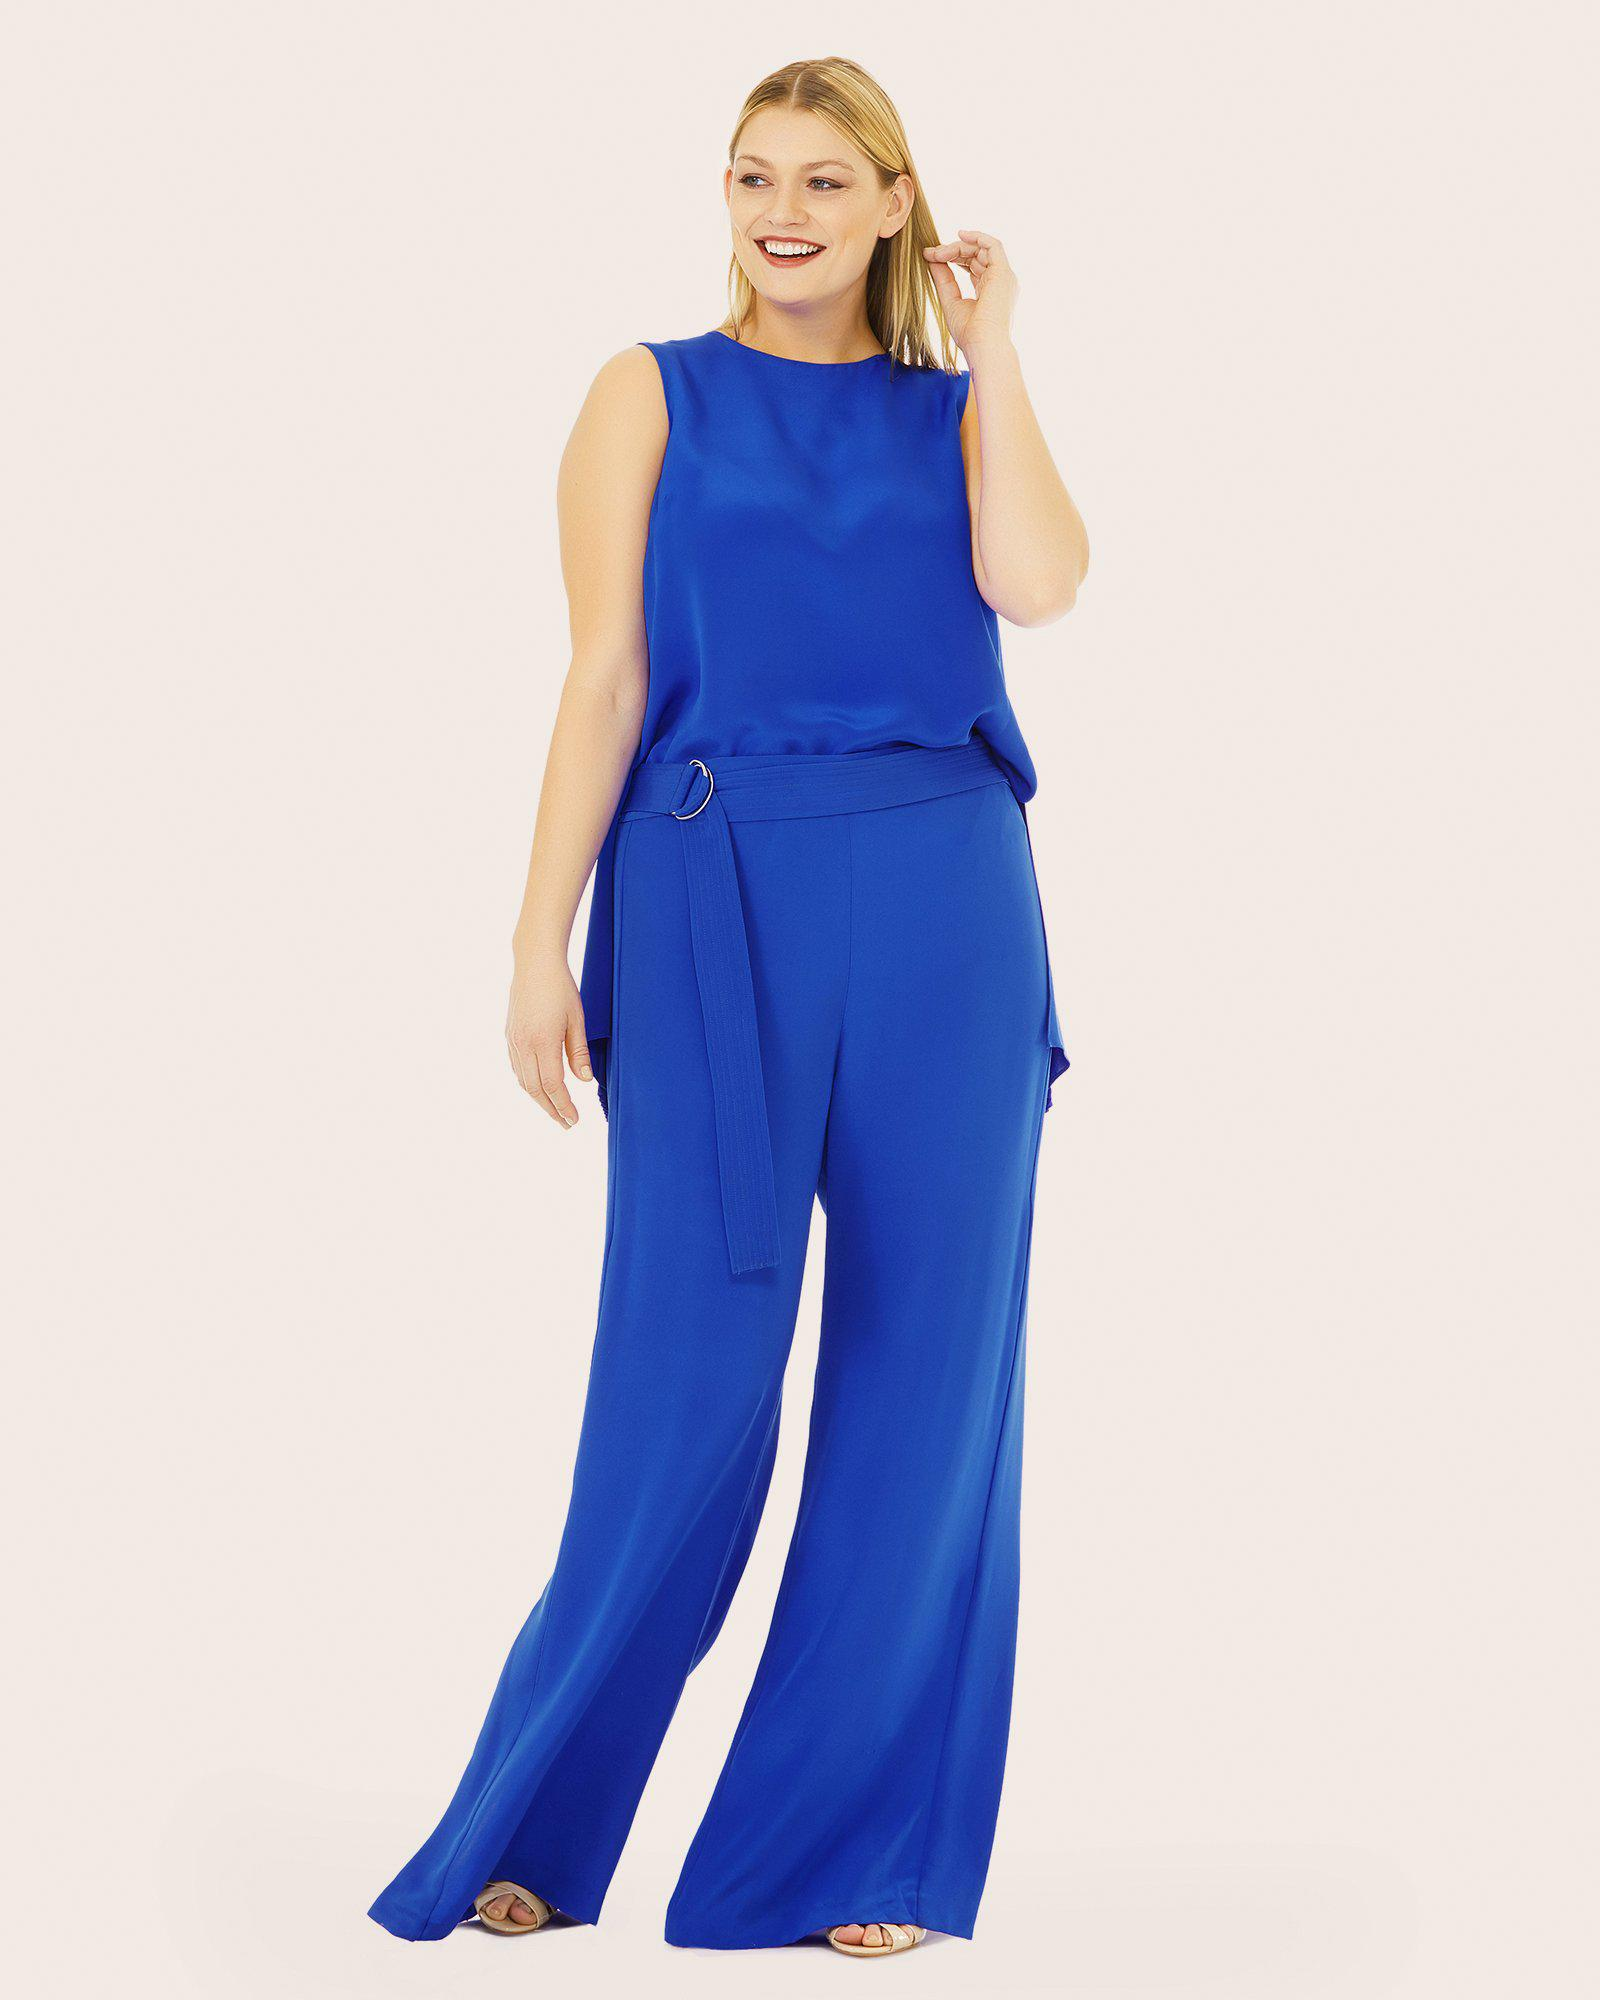 For Sale The Cheapest Clearance Wiki Belted Silk Crepe De Chine Wide-leg Pants - Bright blue Adam Lippes Purchase Sale Online Enjoy 0FEJqOpQQ